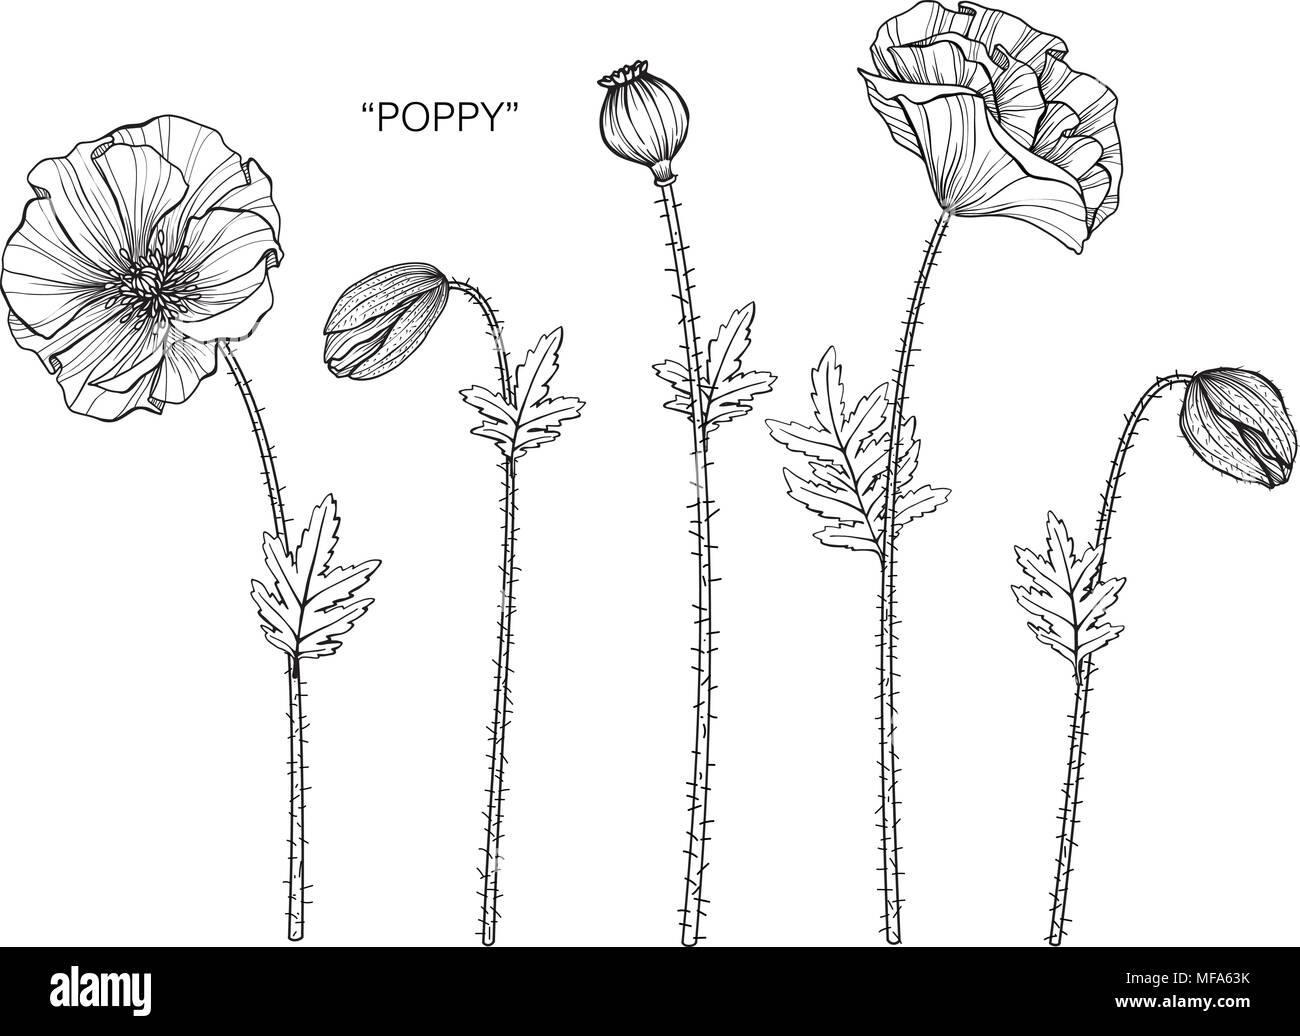 Poppy flower drawing illustration black and white with line art on poppy flower drawing illustration black and white with line art on white backgrounds mightylinksfo